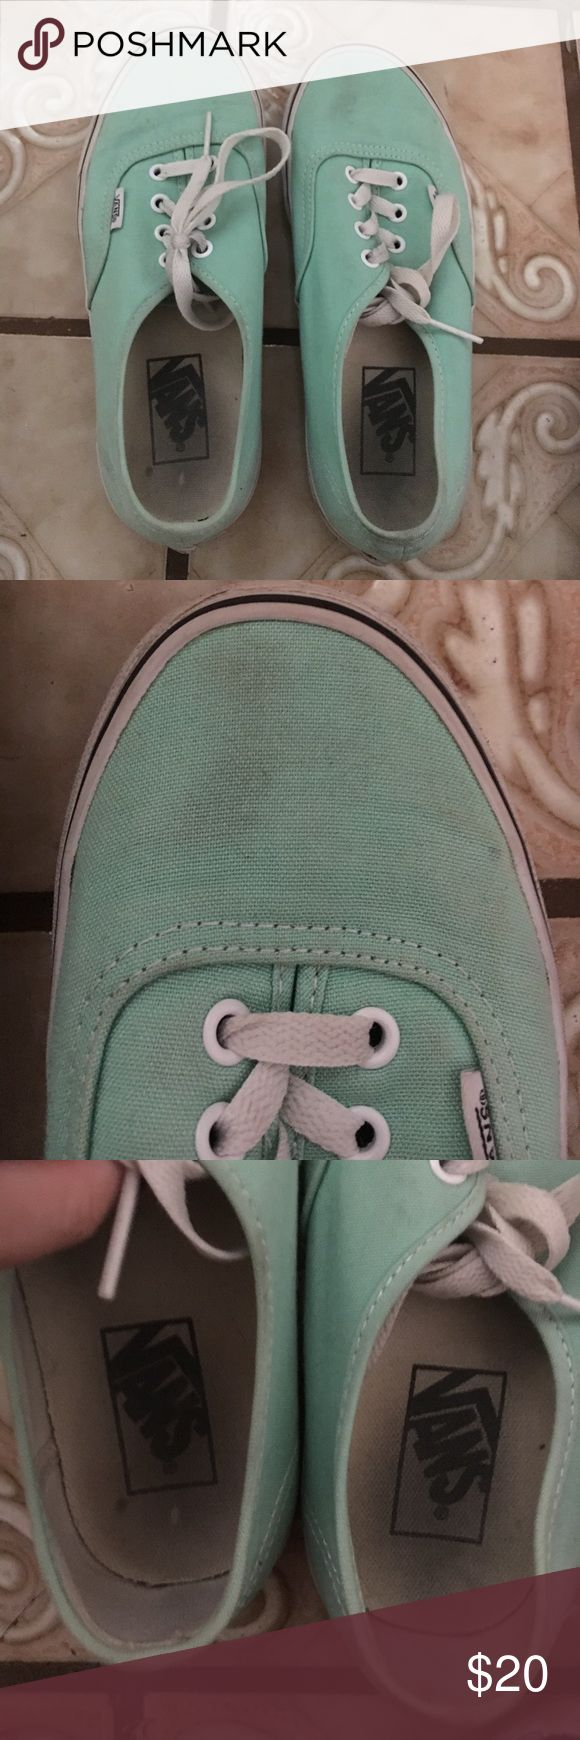 Mint vans Super cute mint vans, they're in pretty good used condition! There is discoloring near the toe of the right shoe but I think it could come out with a wash. It's not super noticeable though. Feel free to make offers! No lowballs please Vans Shoes Sneakers